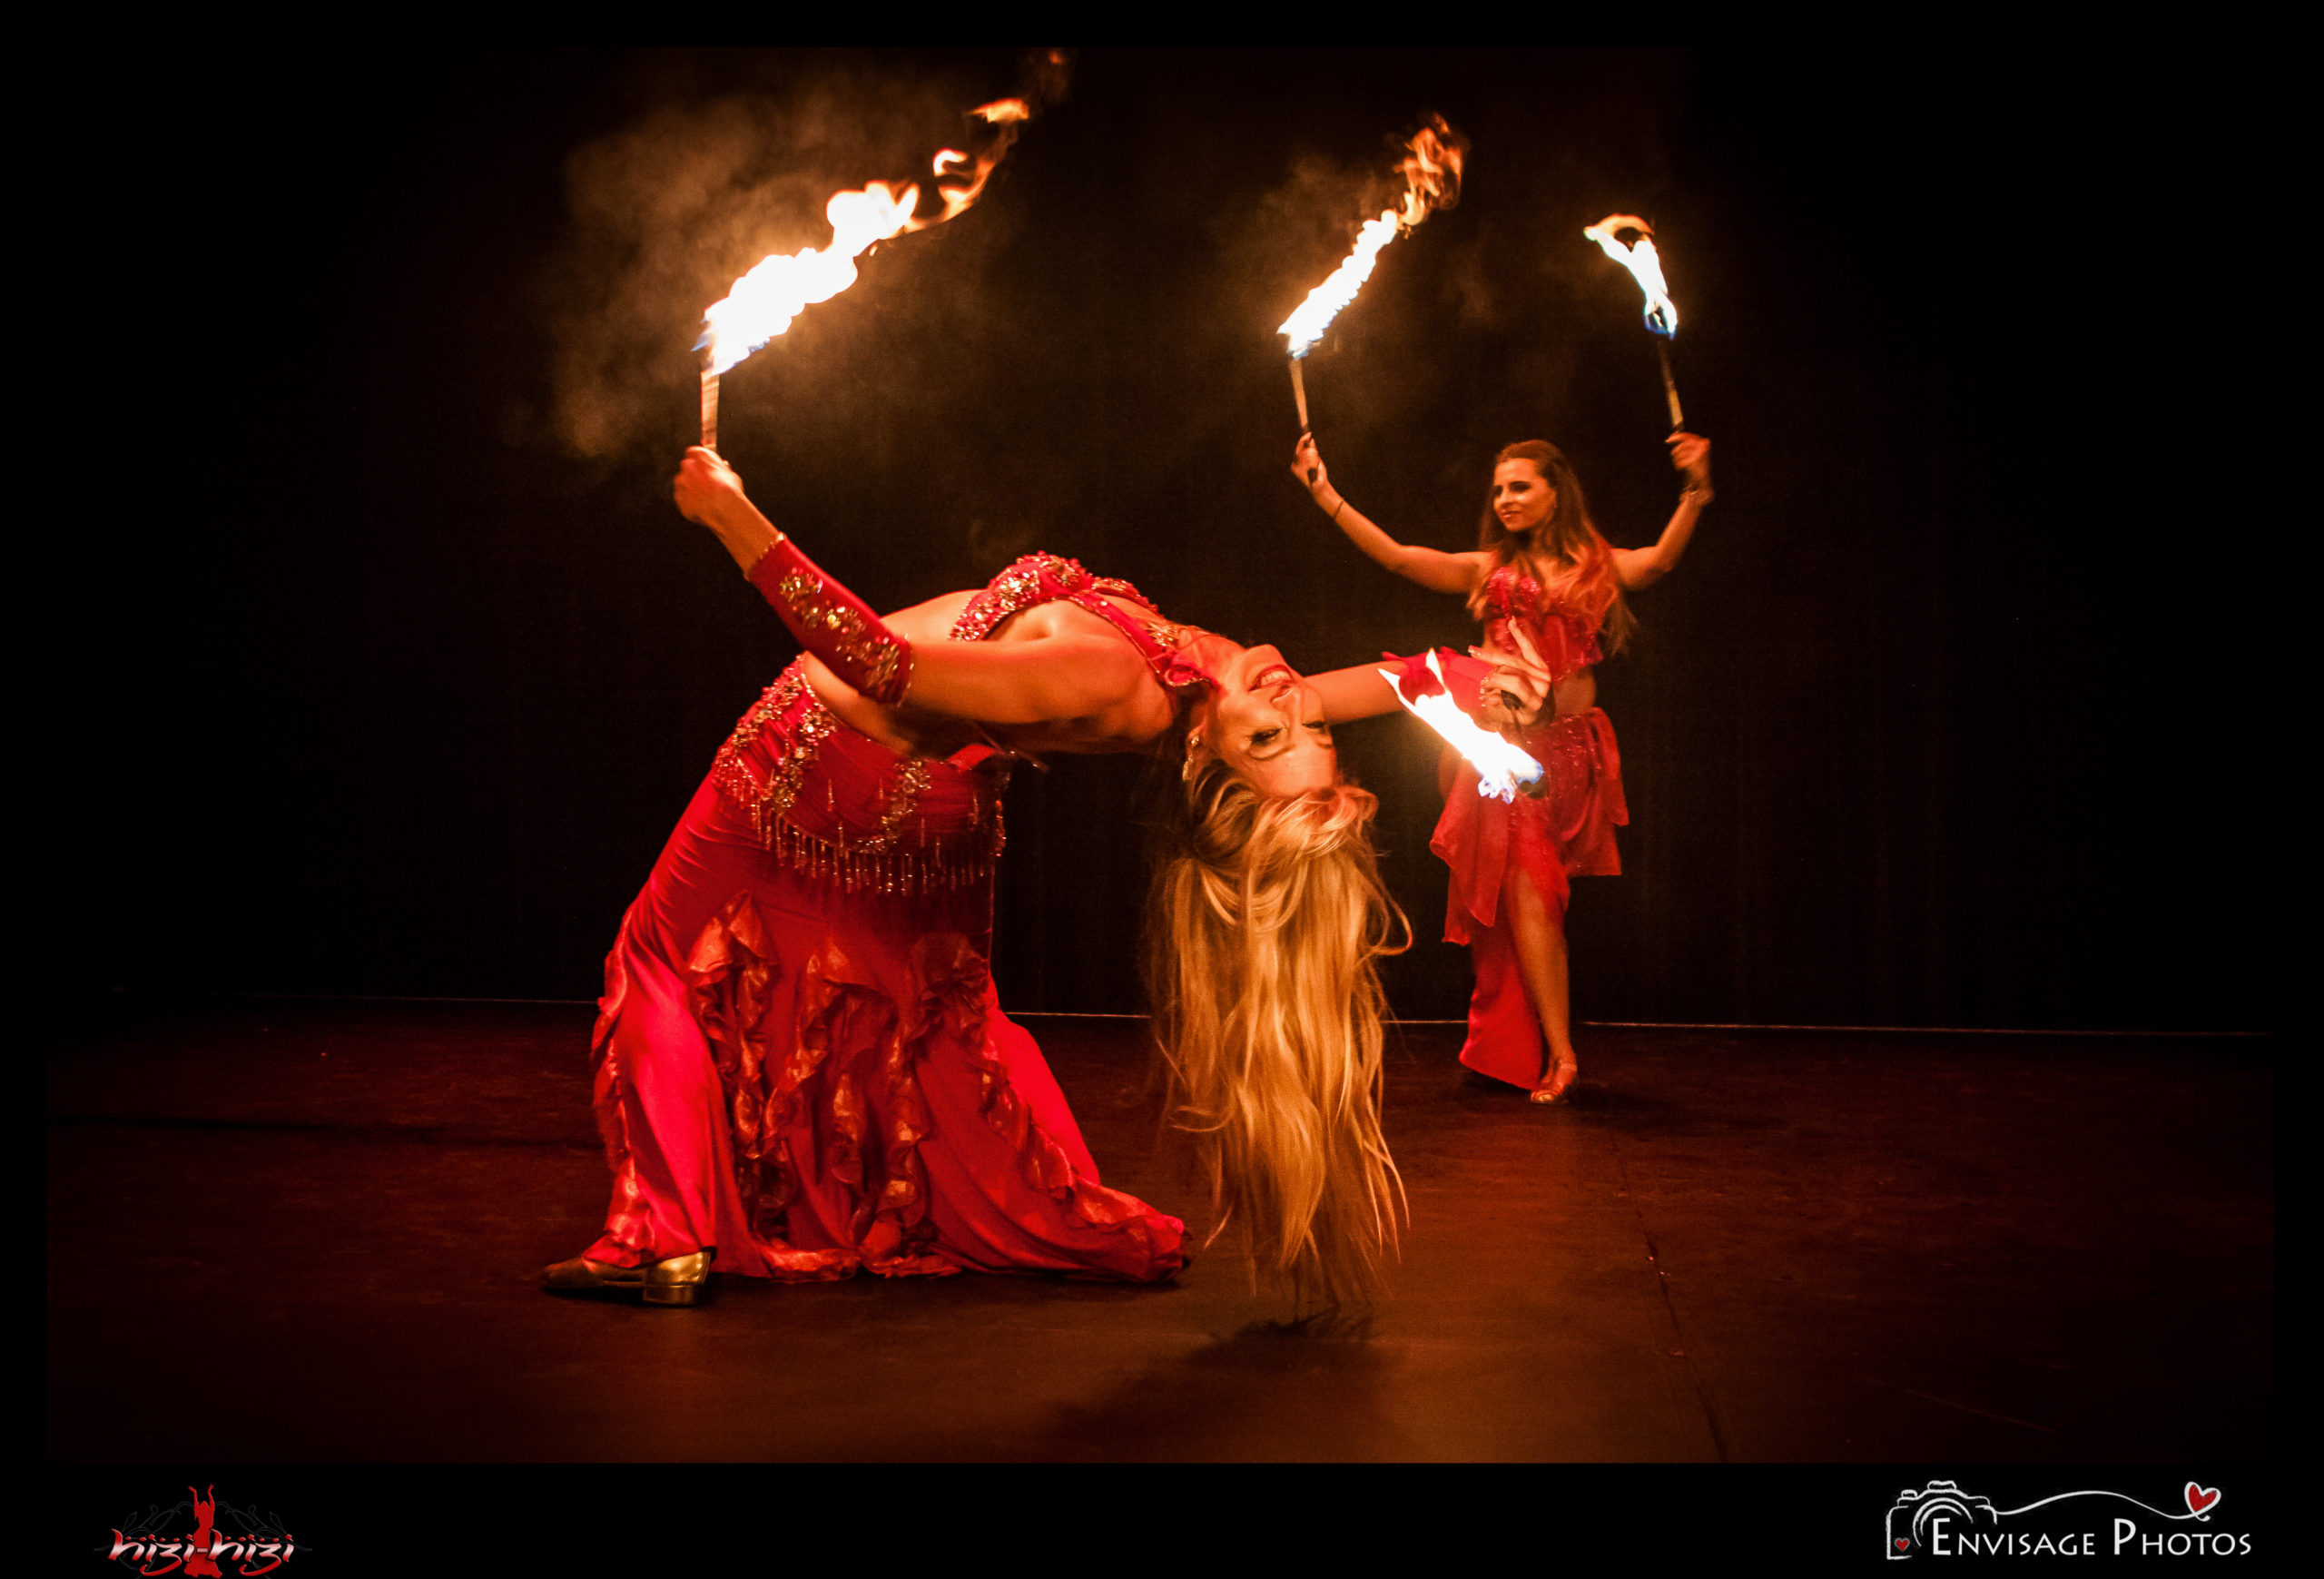 Hizi-Hizi Belly Dance Tarryn Cassidy Fire